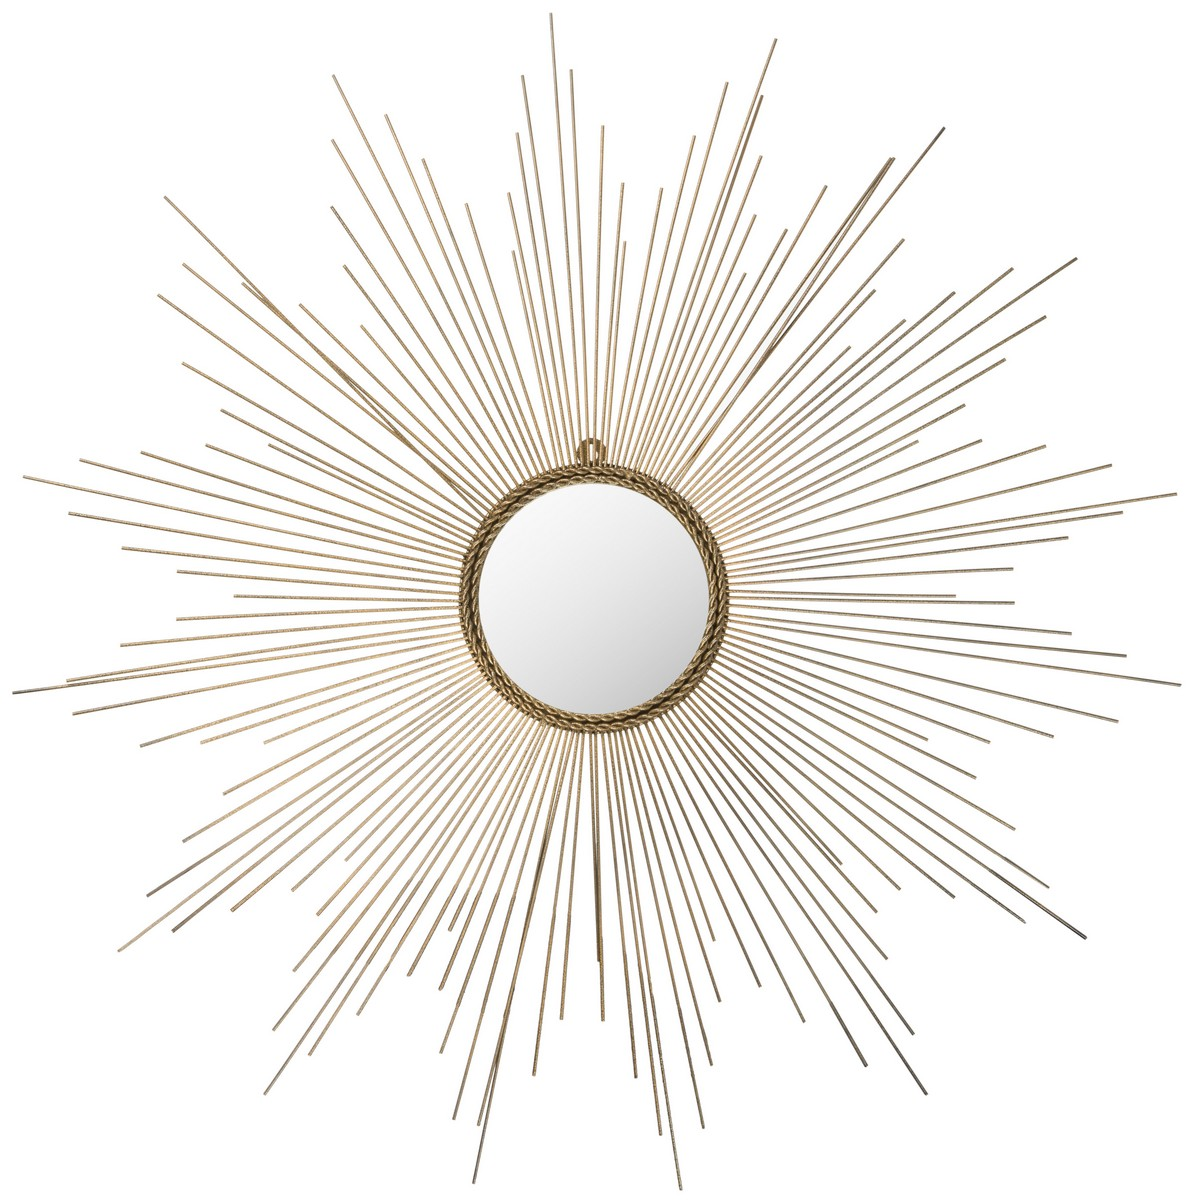 Silver Sunburst Mirror Wall Decor Martha Stewart Gold Sun